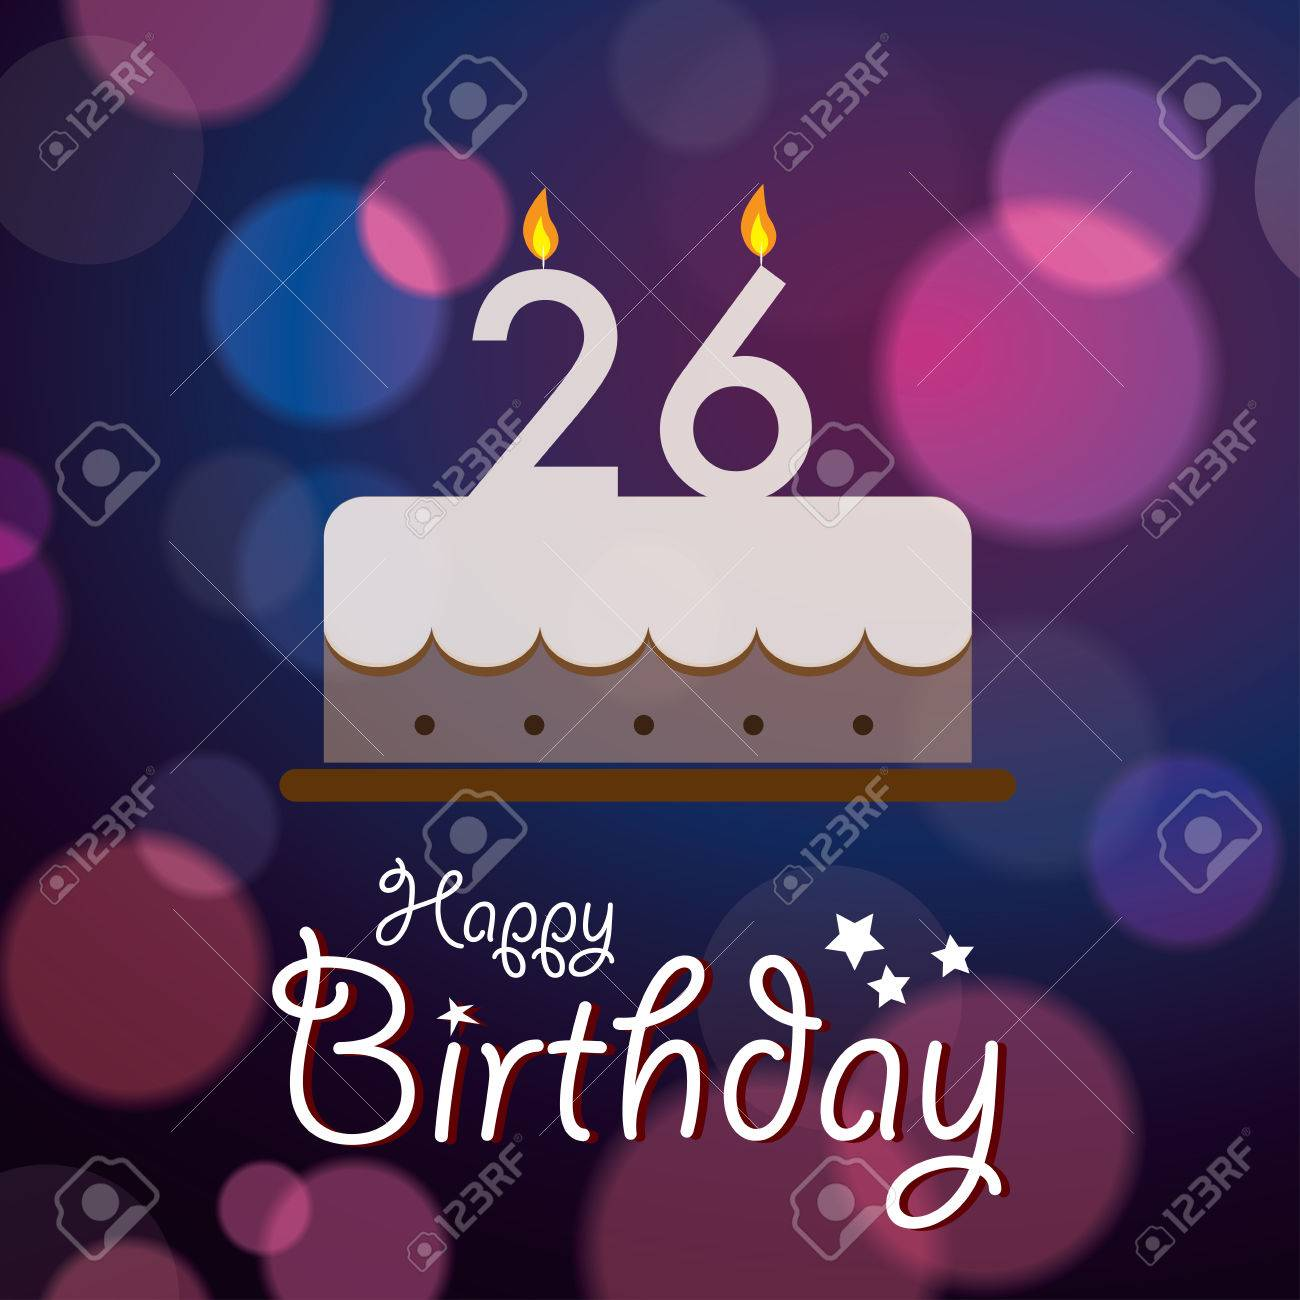 happy 26th birthday images ; 28592911-happy-26th-birthday-bokeh-vector-background-with-cake